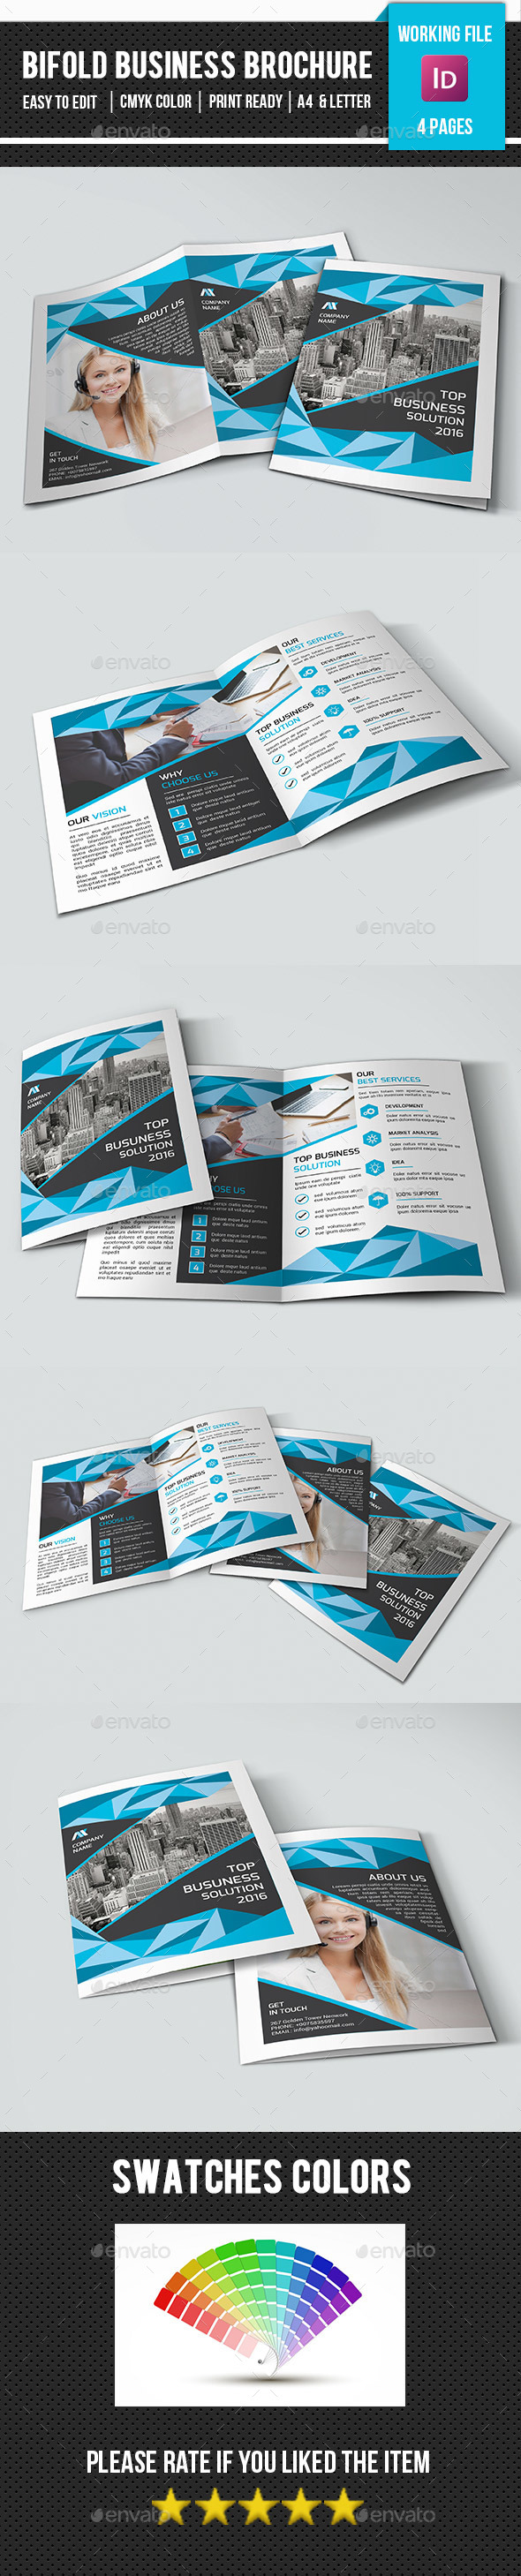 Bifold Business Brochure Template-V365 - Corporate Brochures